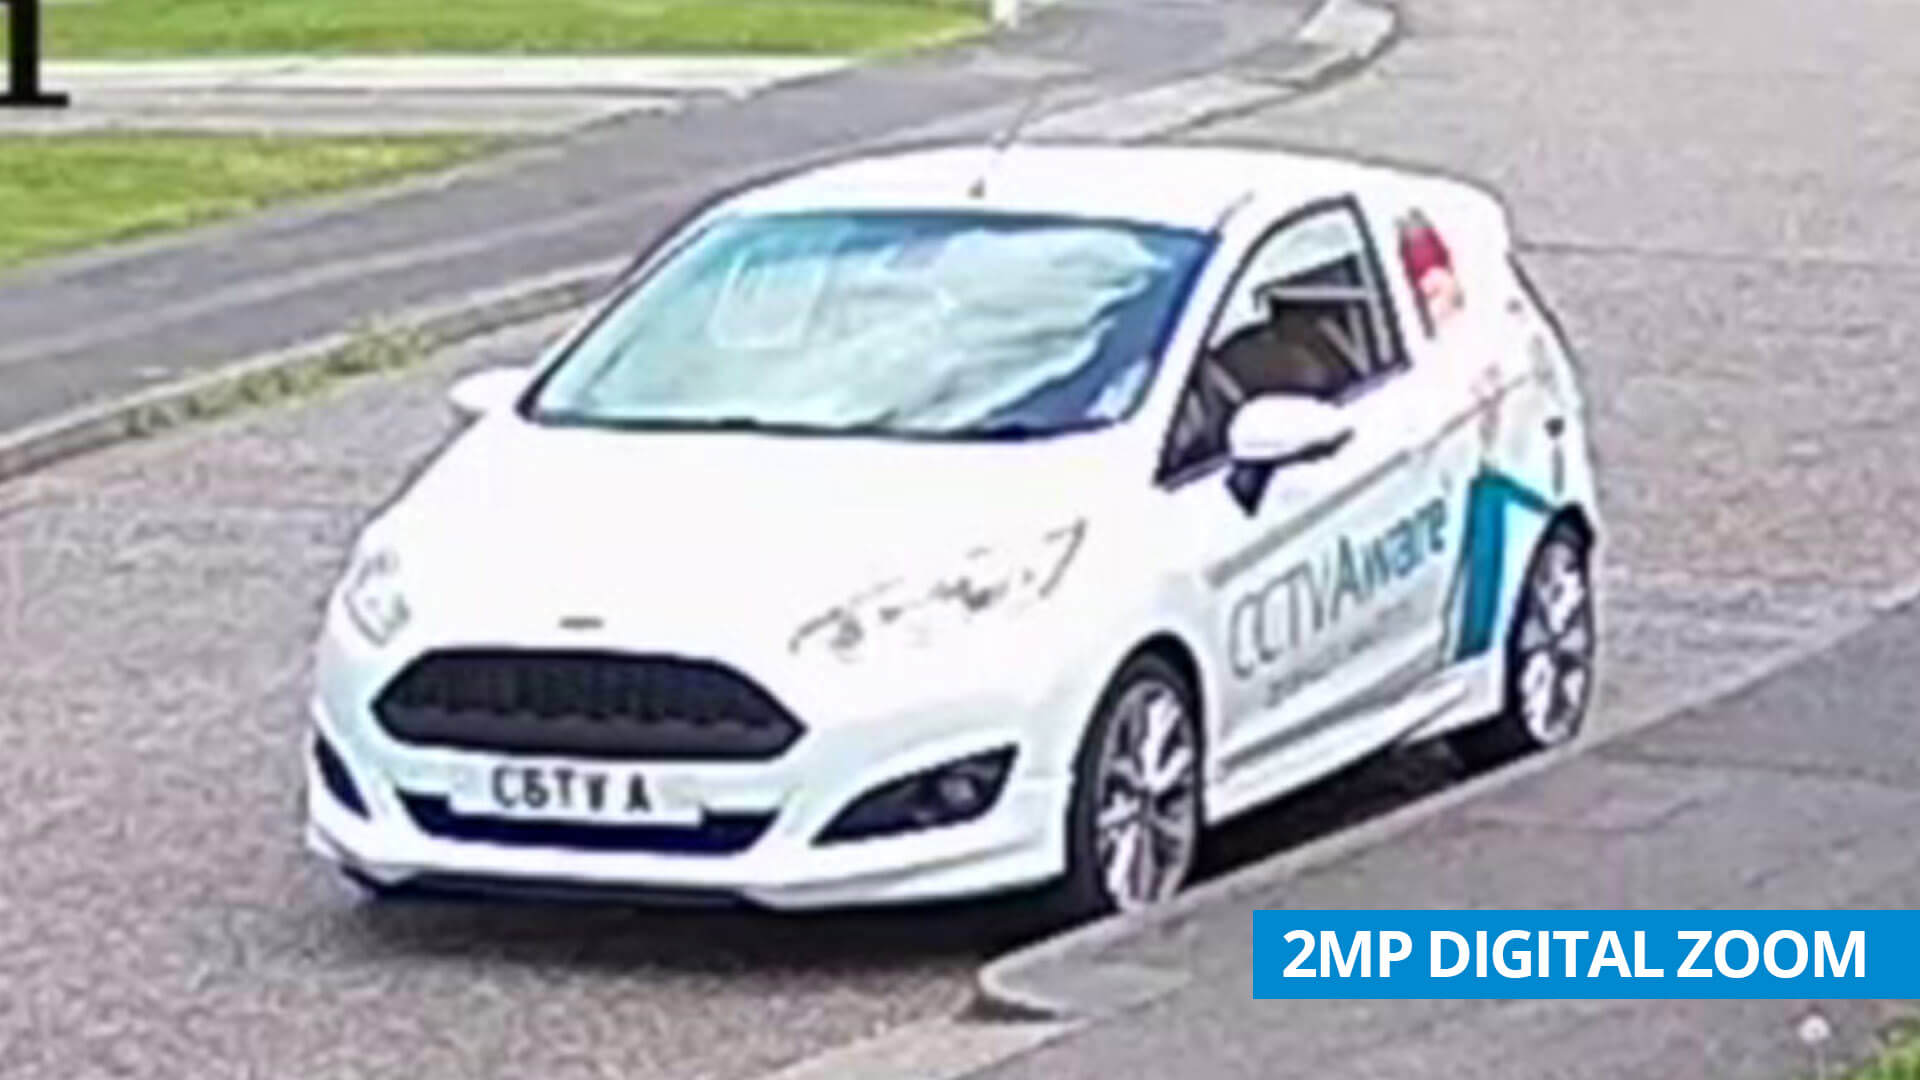 2MP CAR REG EXAMPLE (OVERLAY)